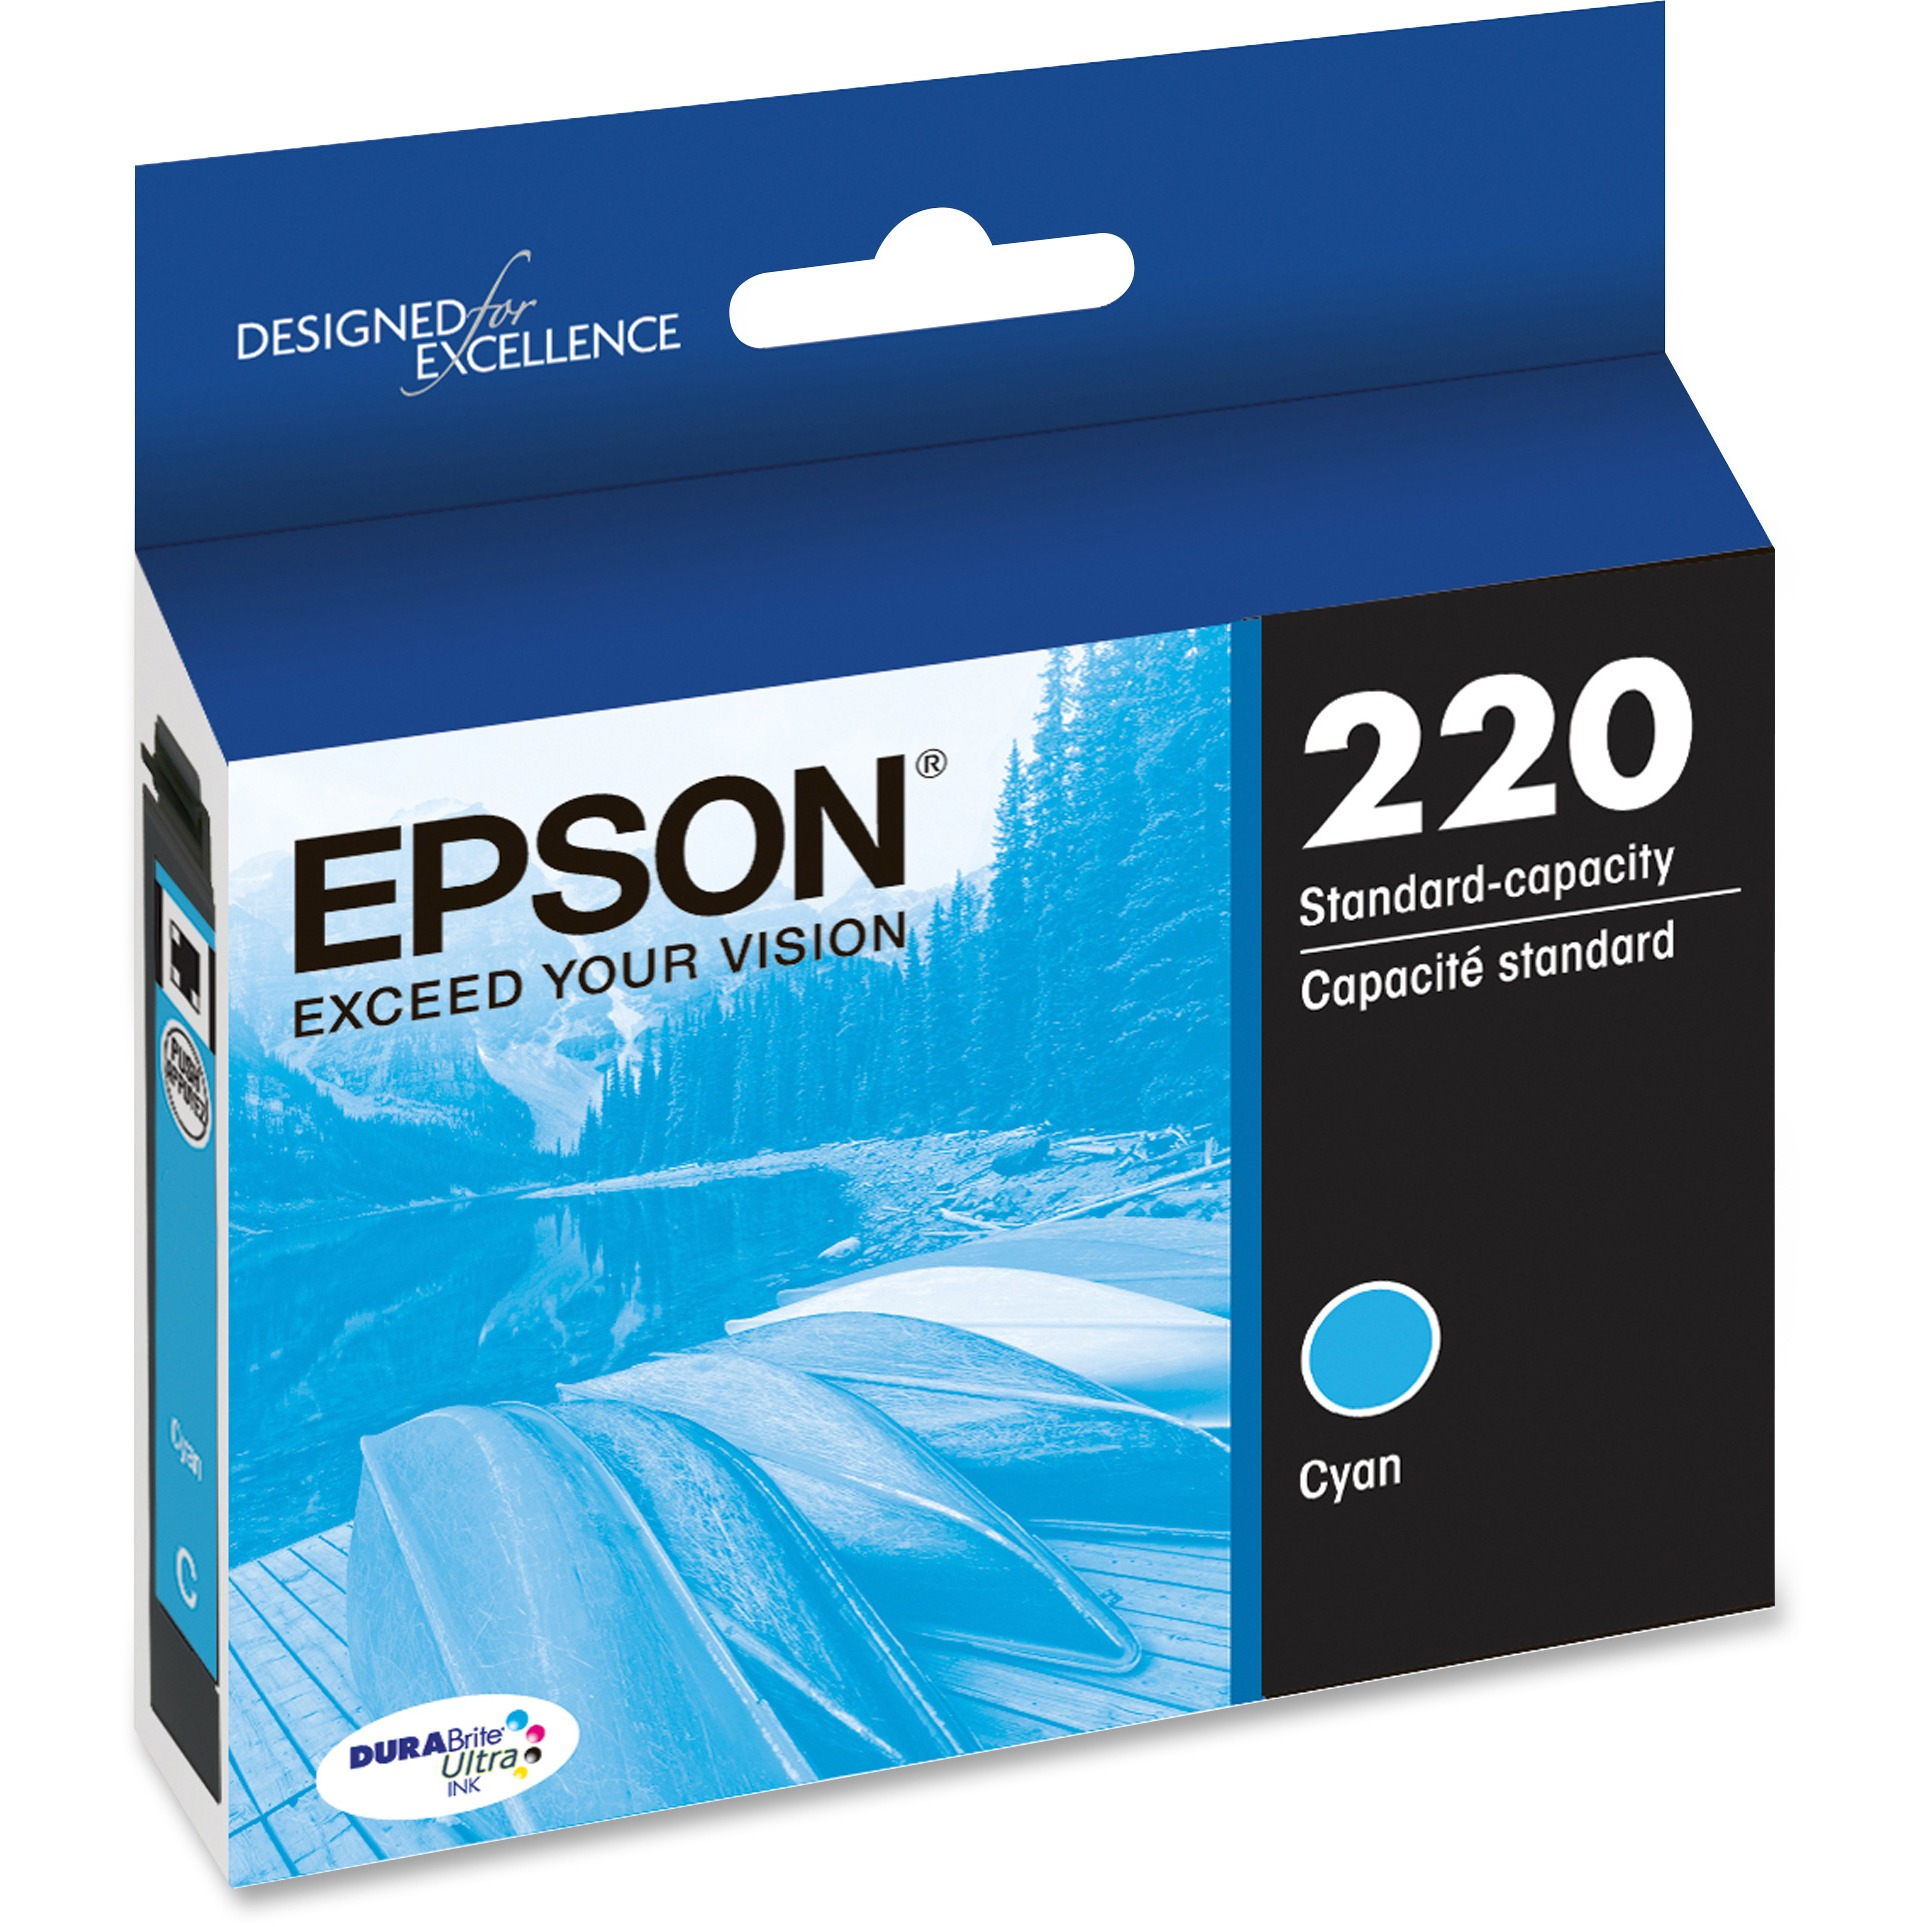 Epson DURABrite Ultra Ink T220 Original Ink Cartridge